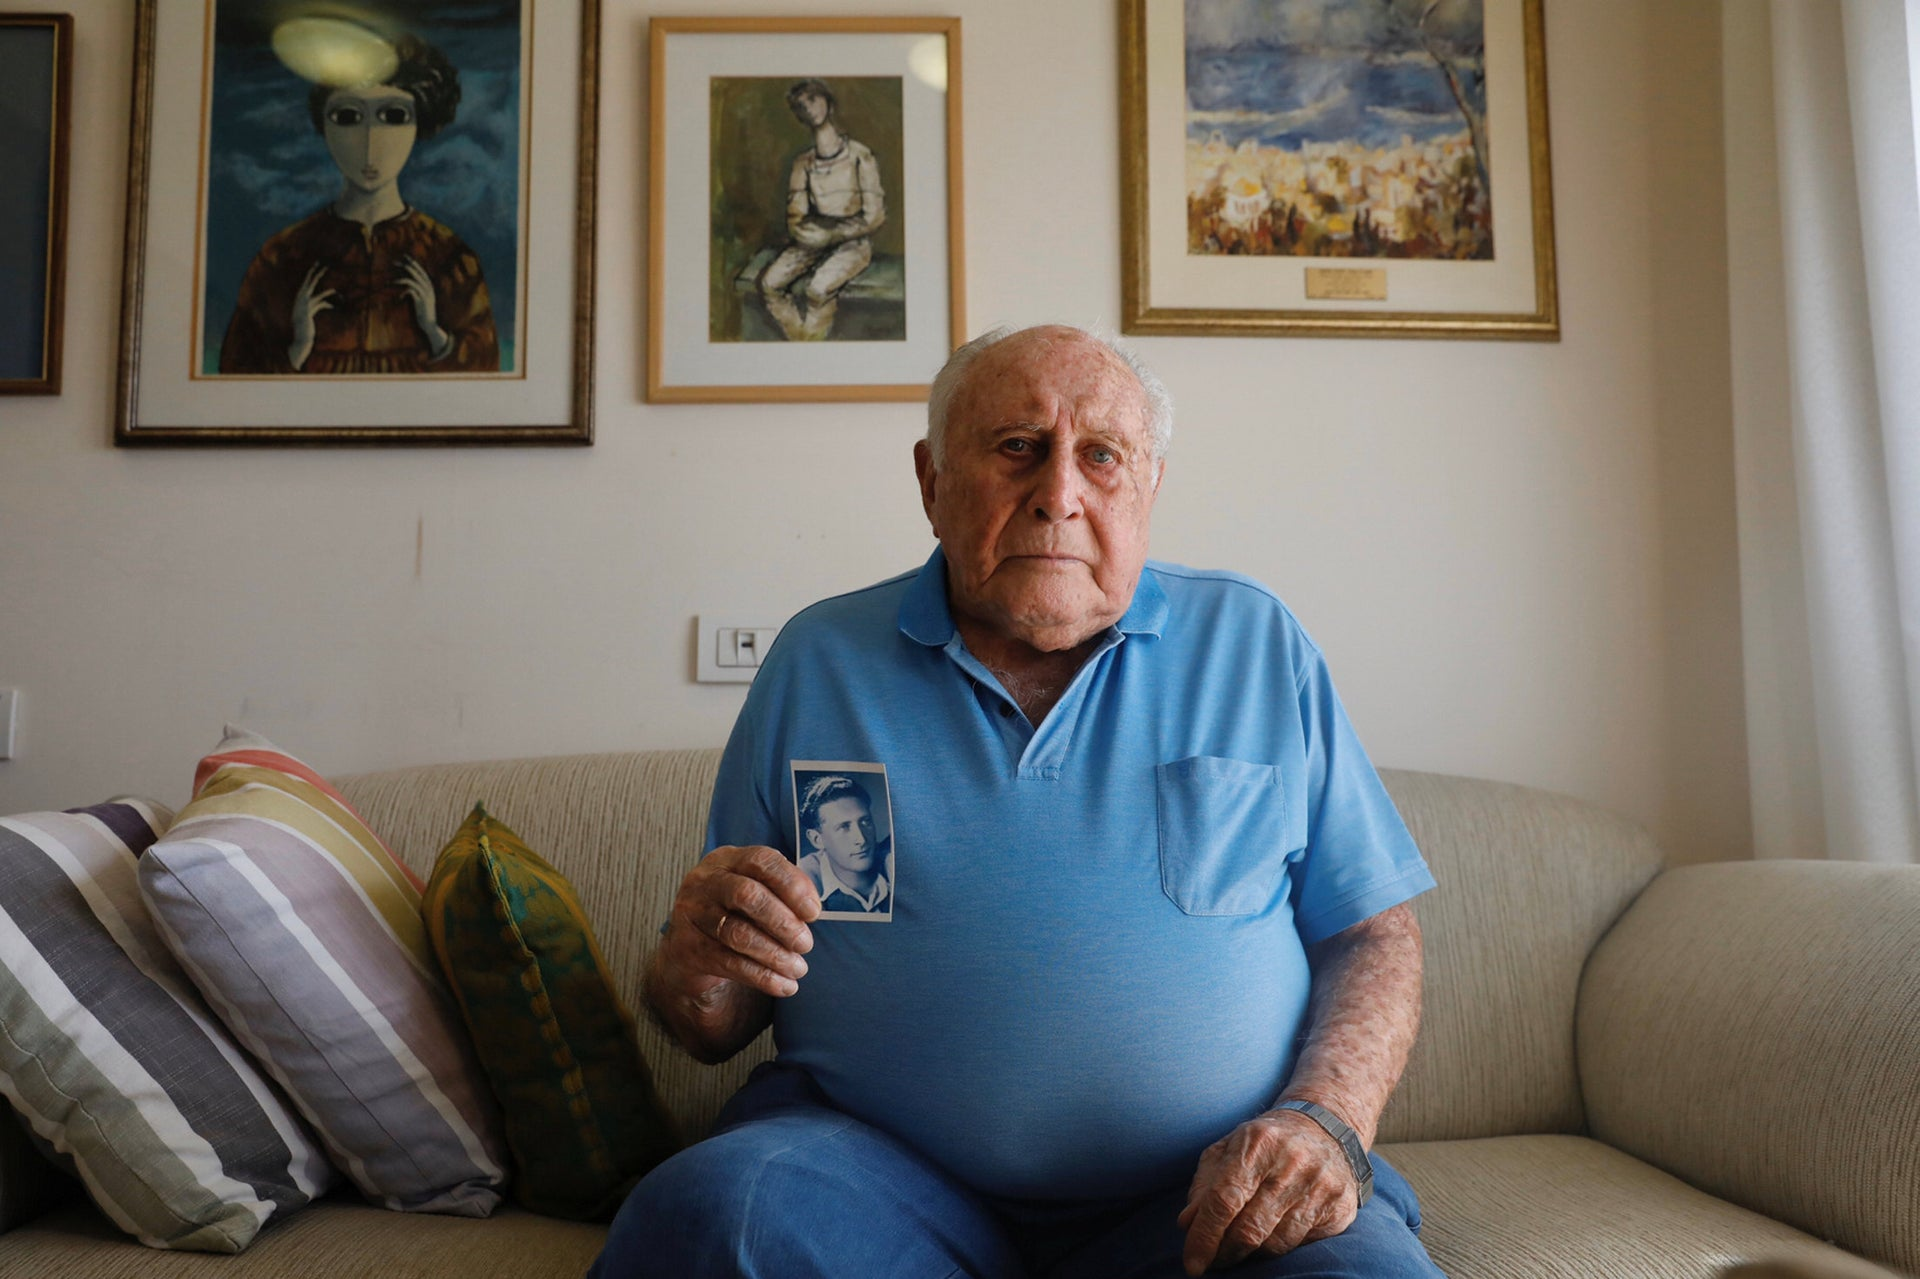 Yehuda (Poldak) Meimon with his picture from the 'Avengers', at his home in Ramat Gan, Israel.